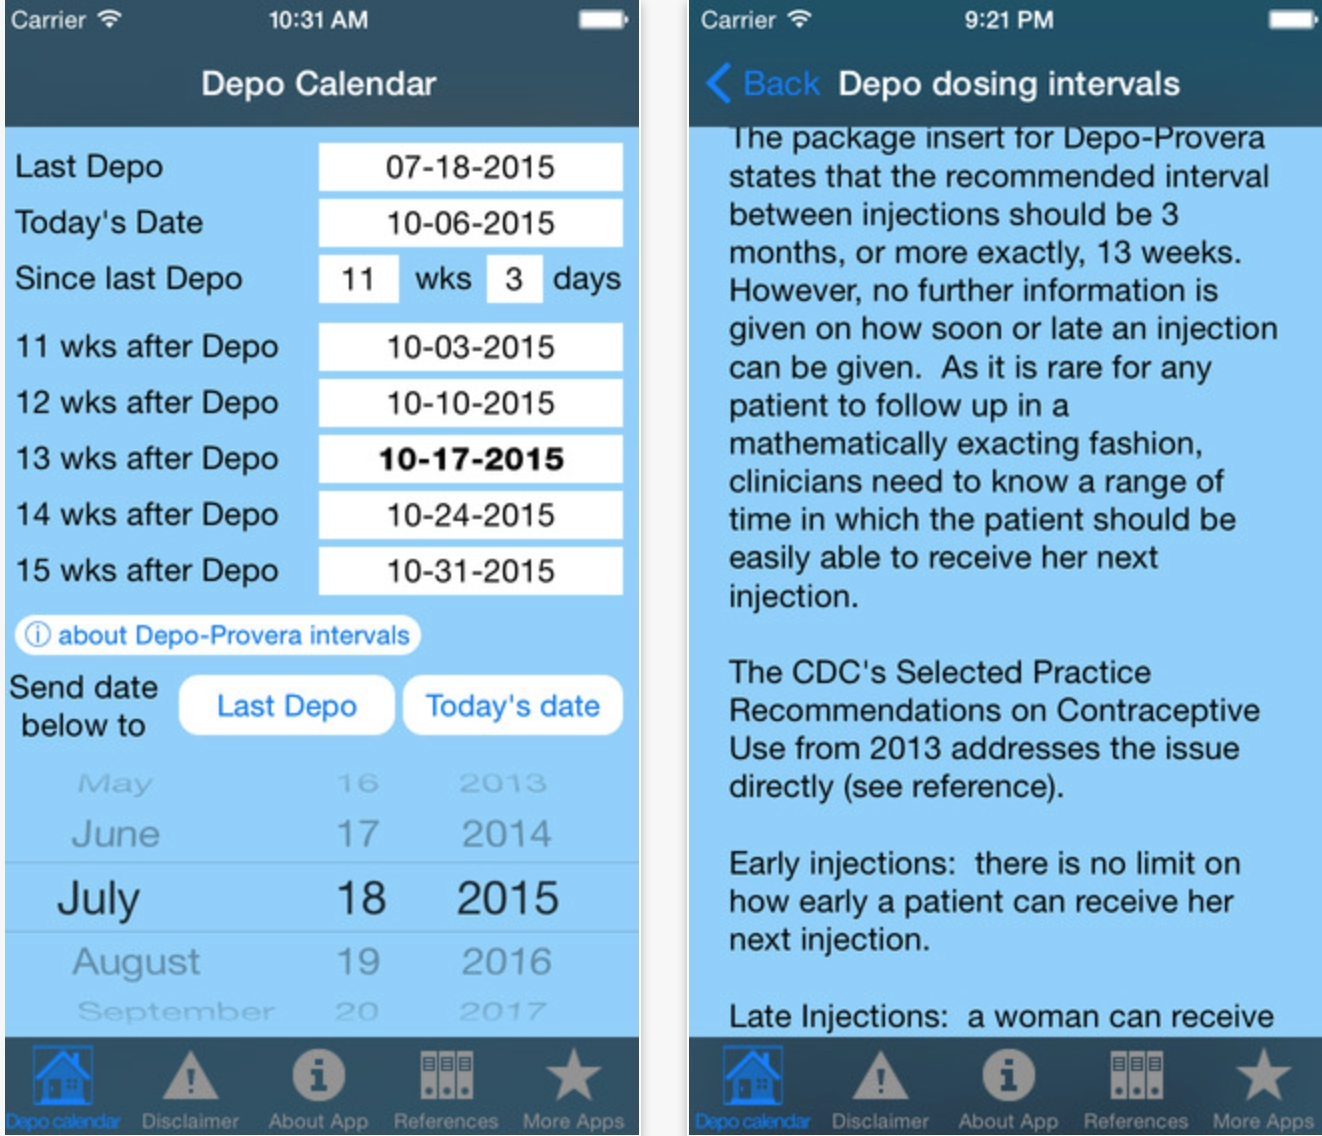 Depo Calendar App Could Significantly Improve Contraception  Depo Provera Injectino Schedule